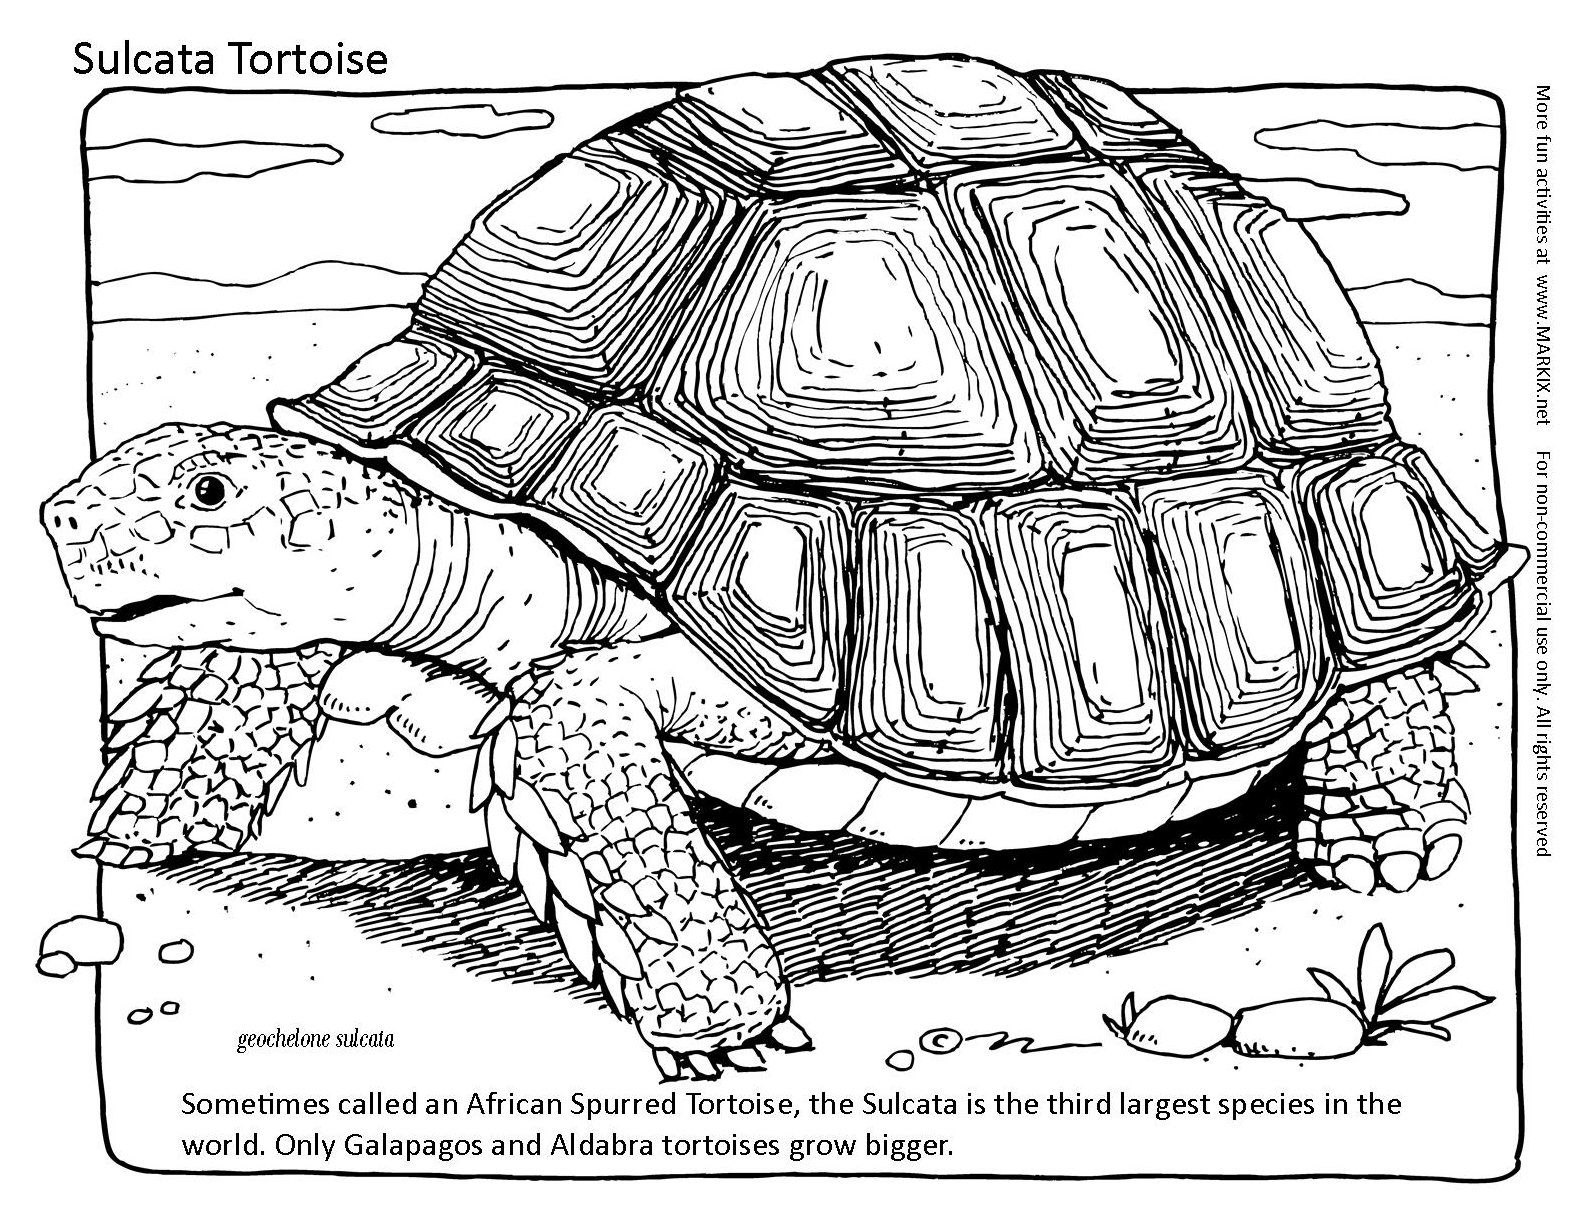 Tortoise Coloring Page Sometimes called an African Spurred